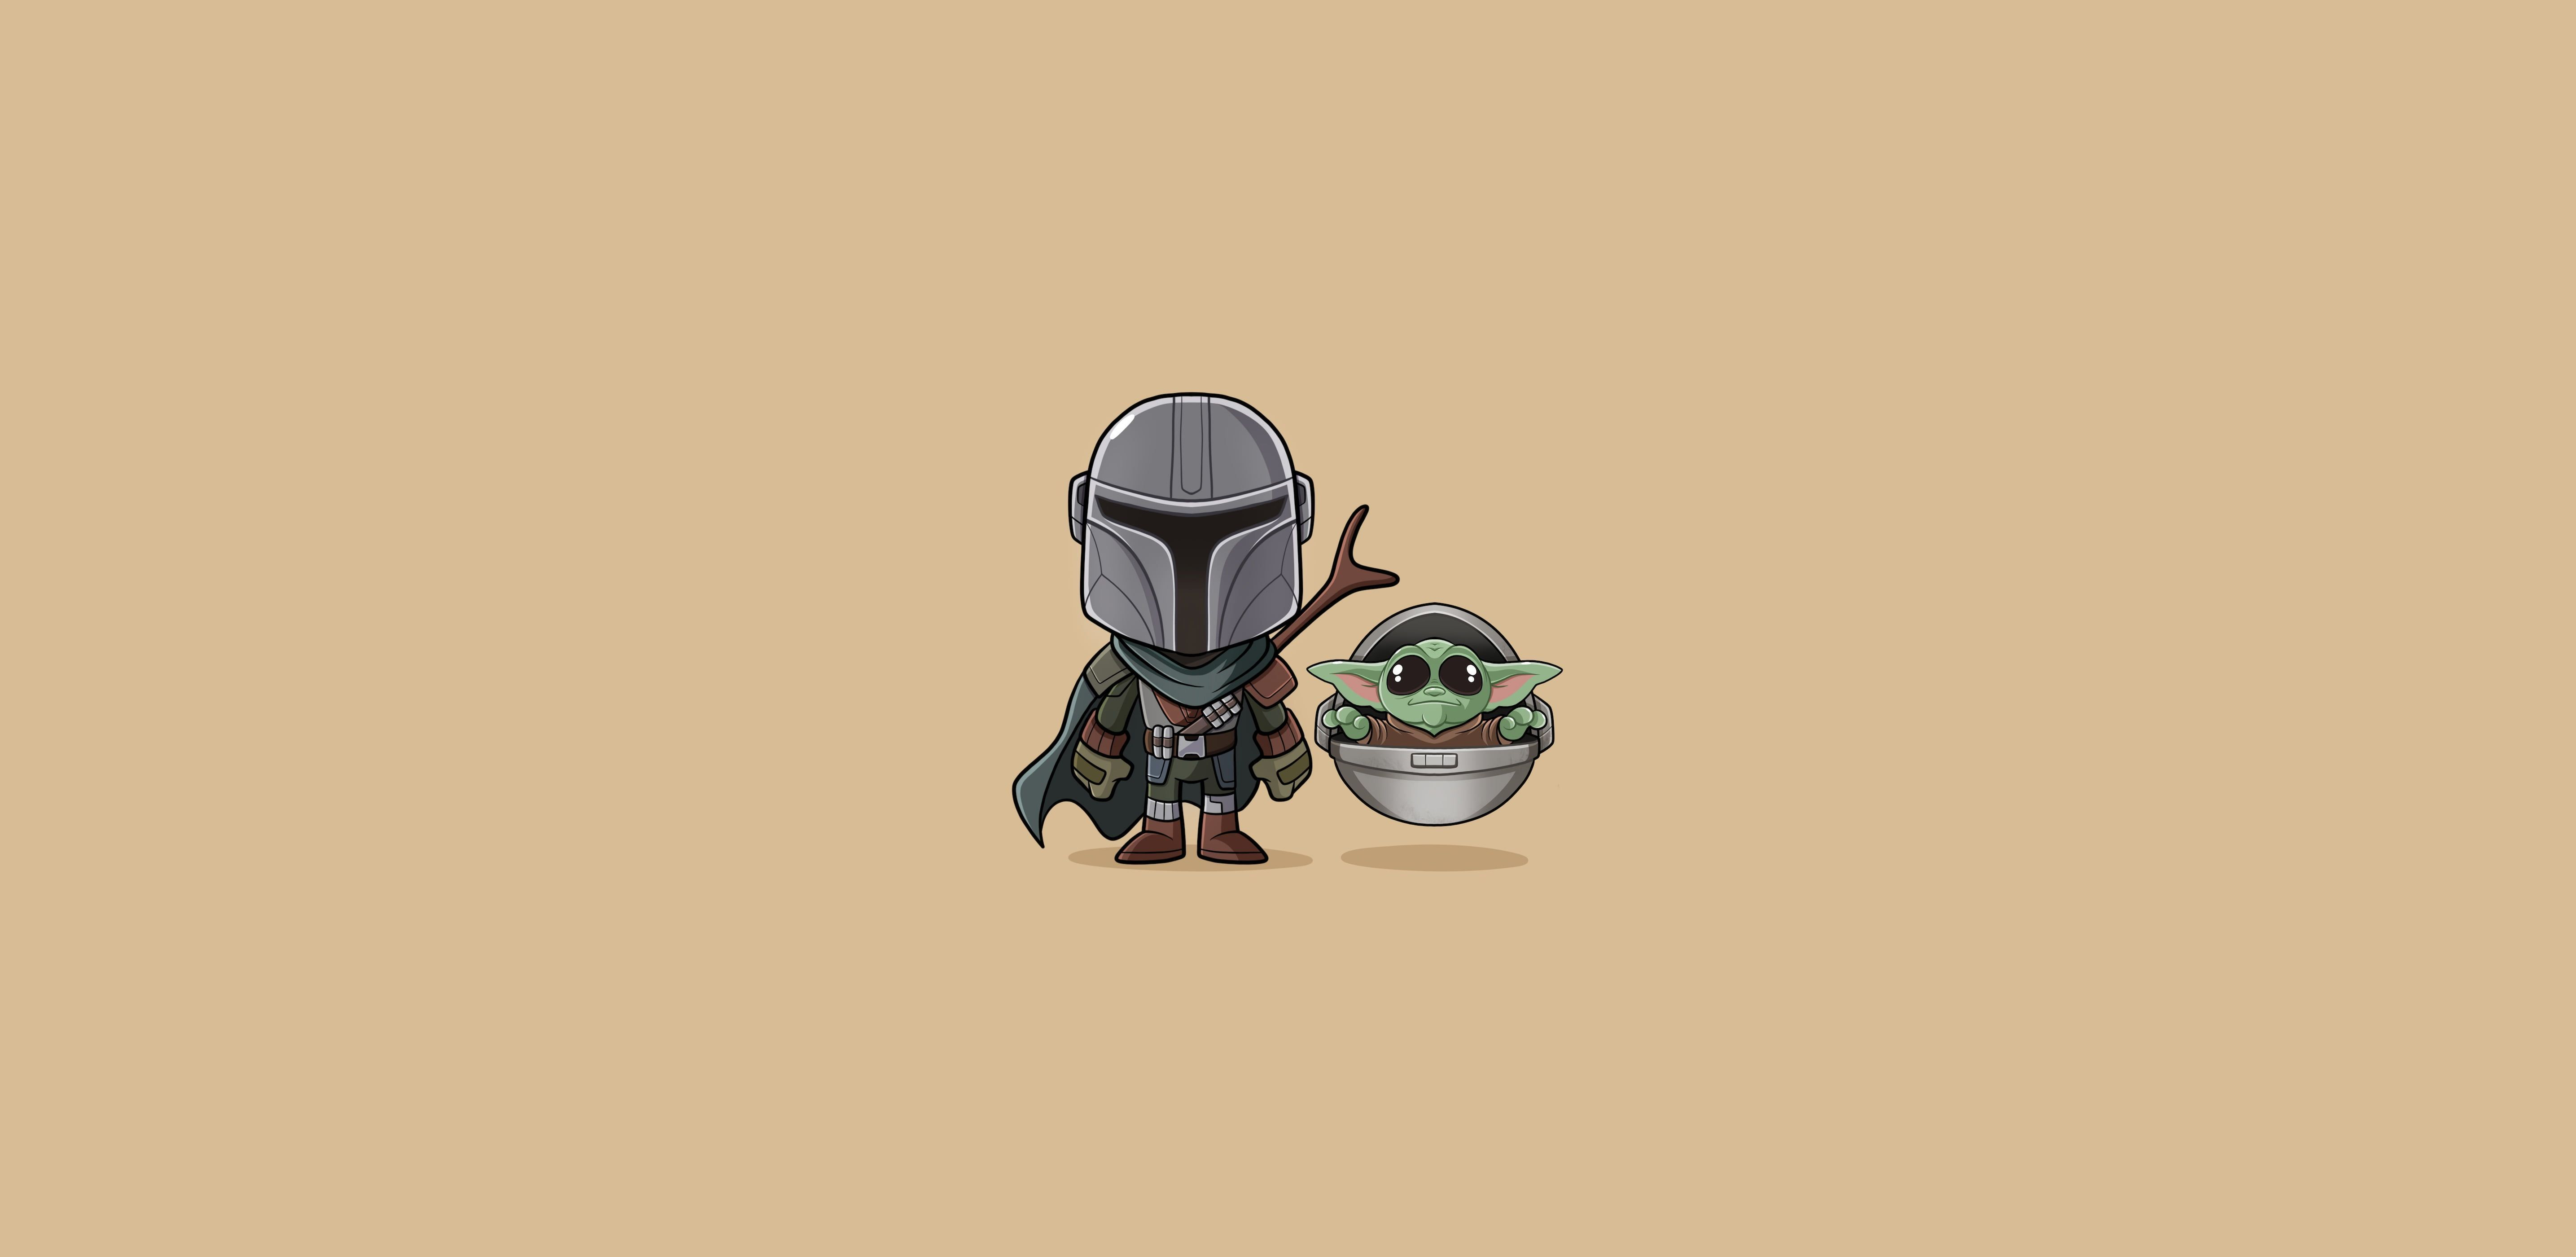 87 Baby Yoda And Images All Net Babyyoda Trends Yoda Wallpaper Star Wars Wallpaper Star Wars Art